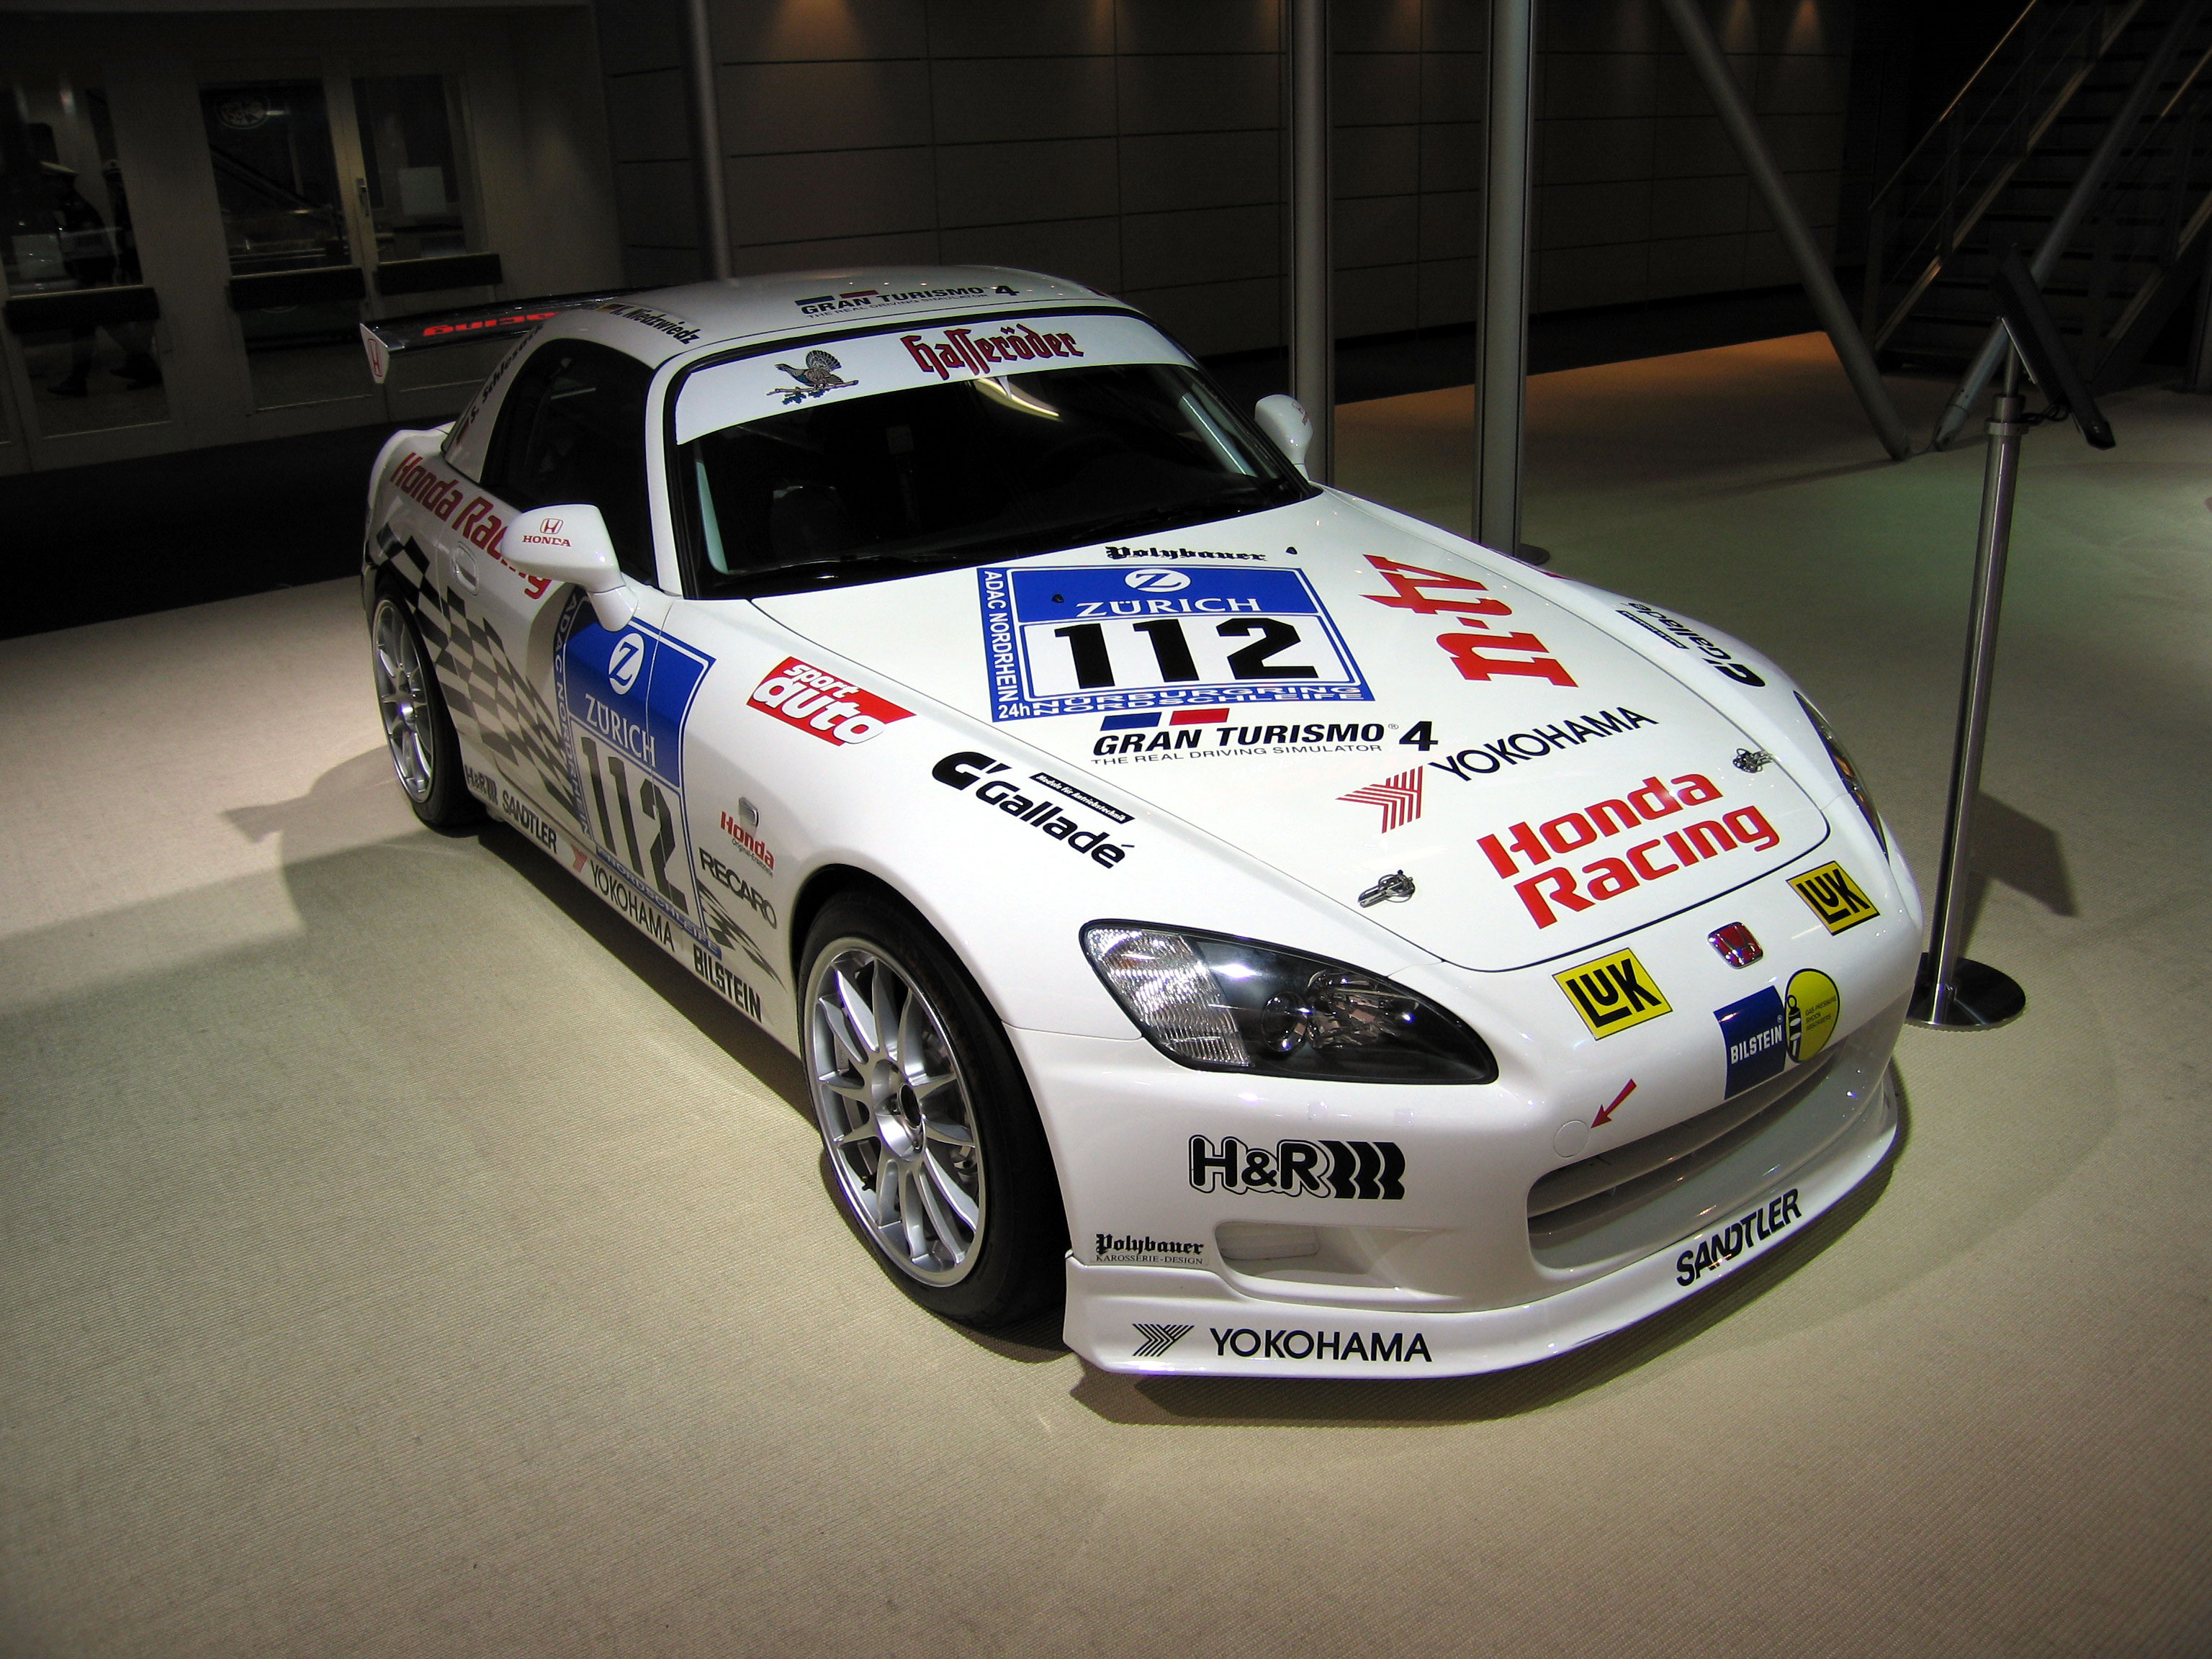 http://upload.wikimedia.org/wikipedia/commons/e/ed/Honda_Racing_S2000.jpg